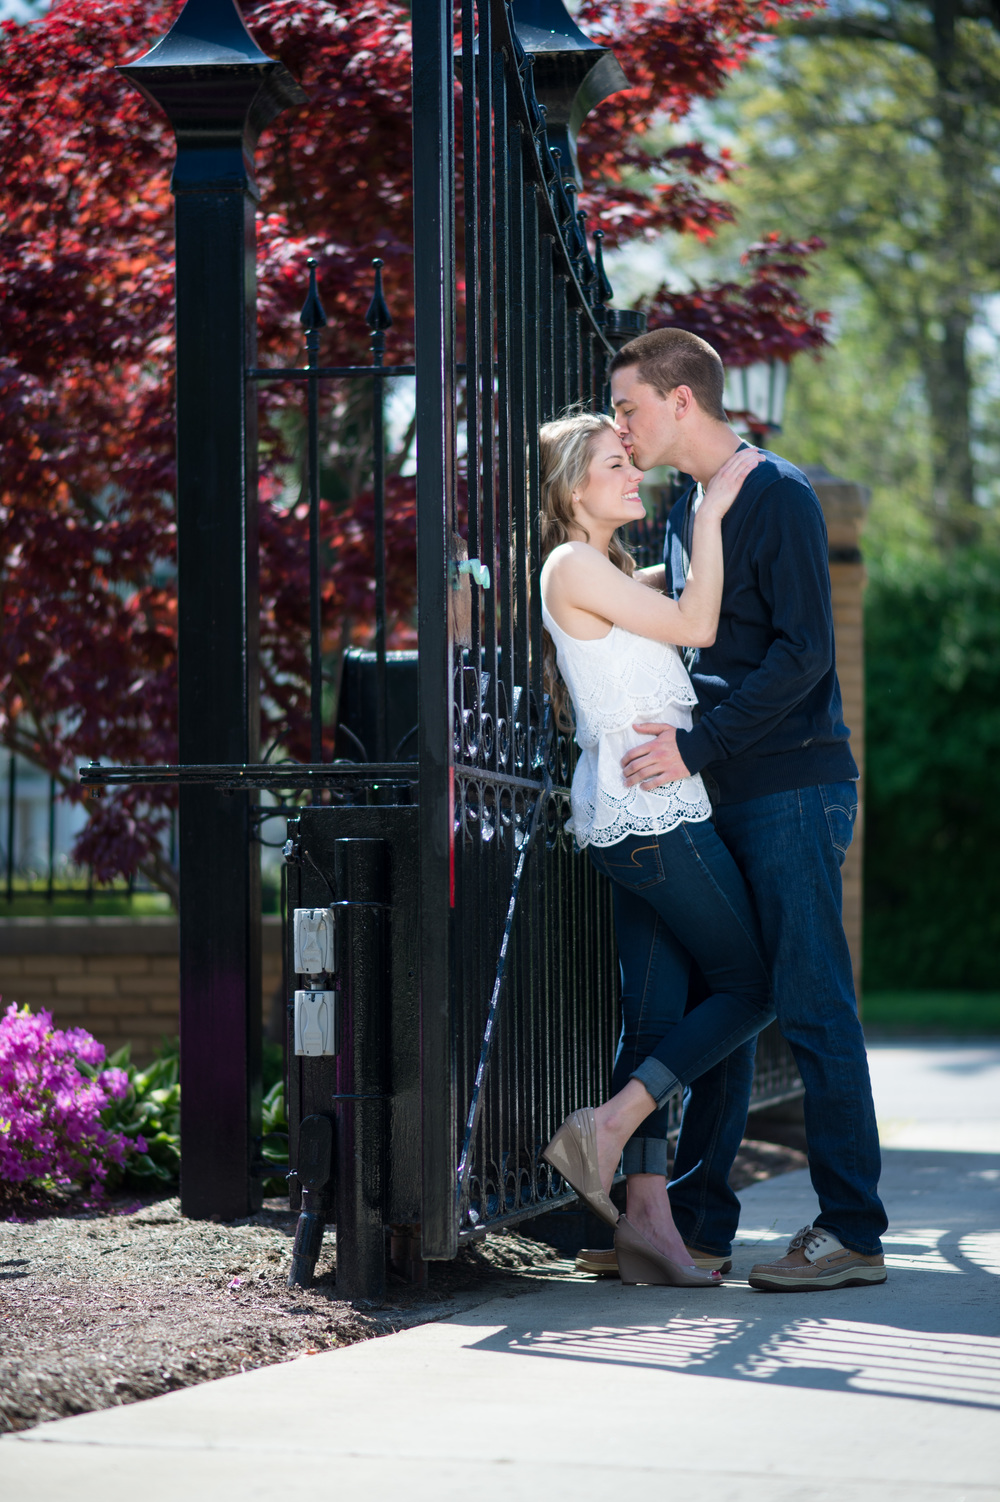 Angela&CurtisEngagement-126.jpg